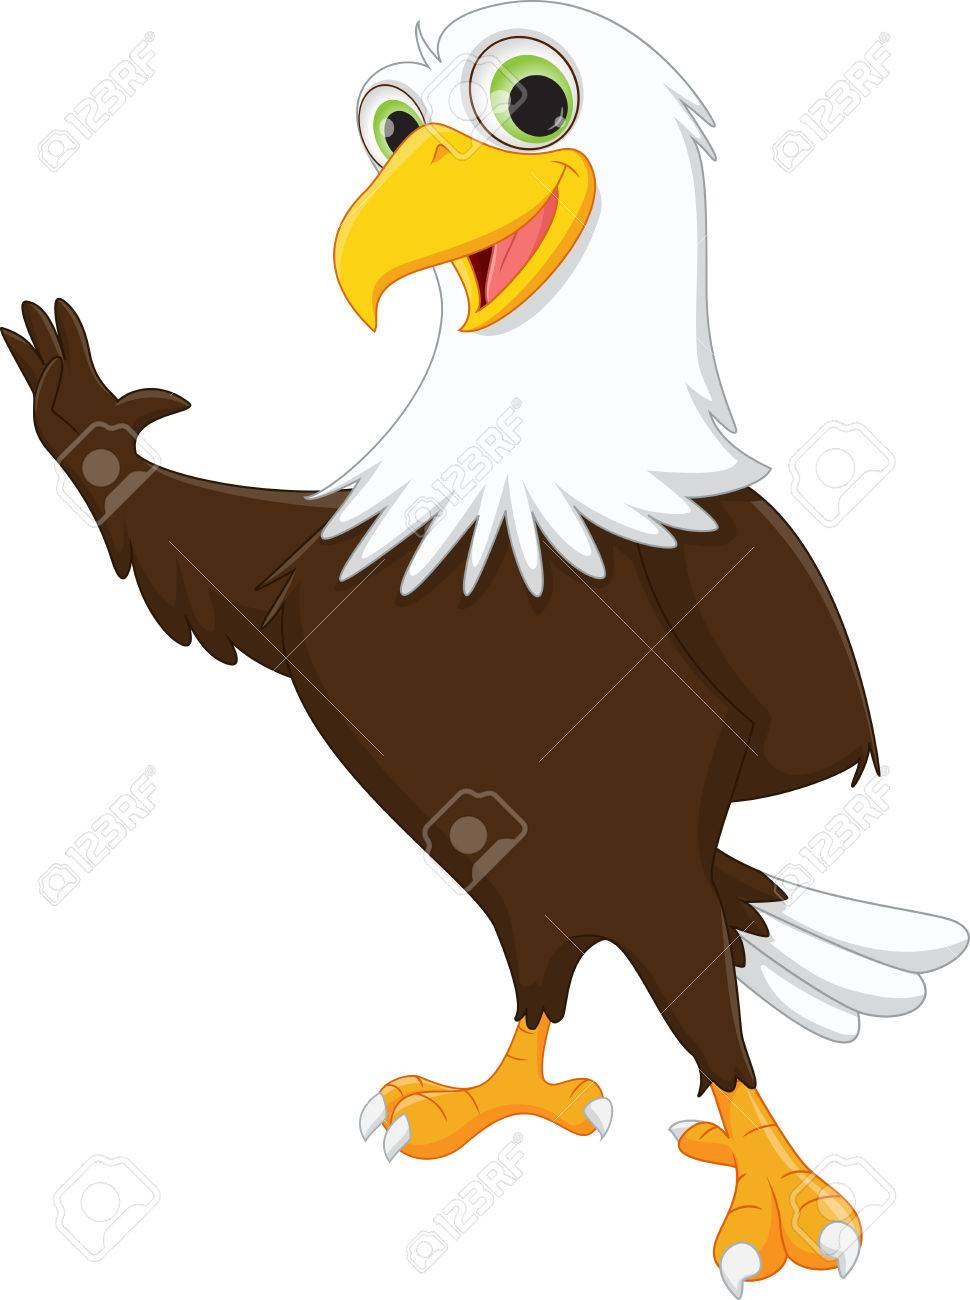 Cute Cartoon Eagle : cartoon, eagle, Eagle, Cartoon, Waving, Royalty, Cliparts,, Vectors,, Stock, Illustration., Image, 60376065.